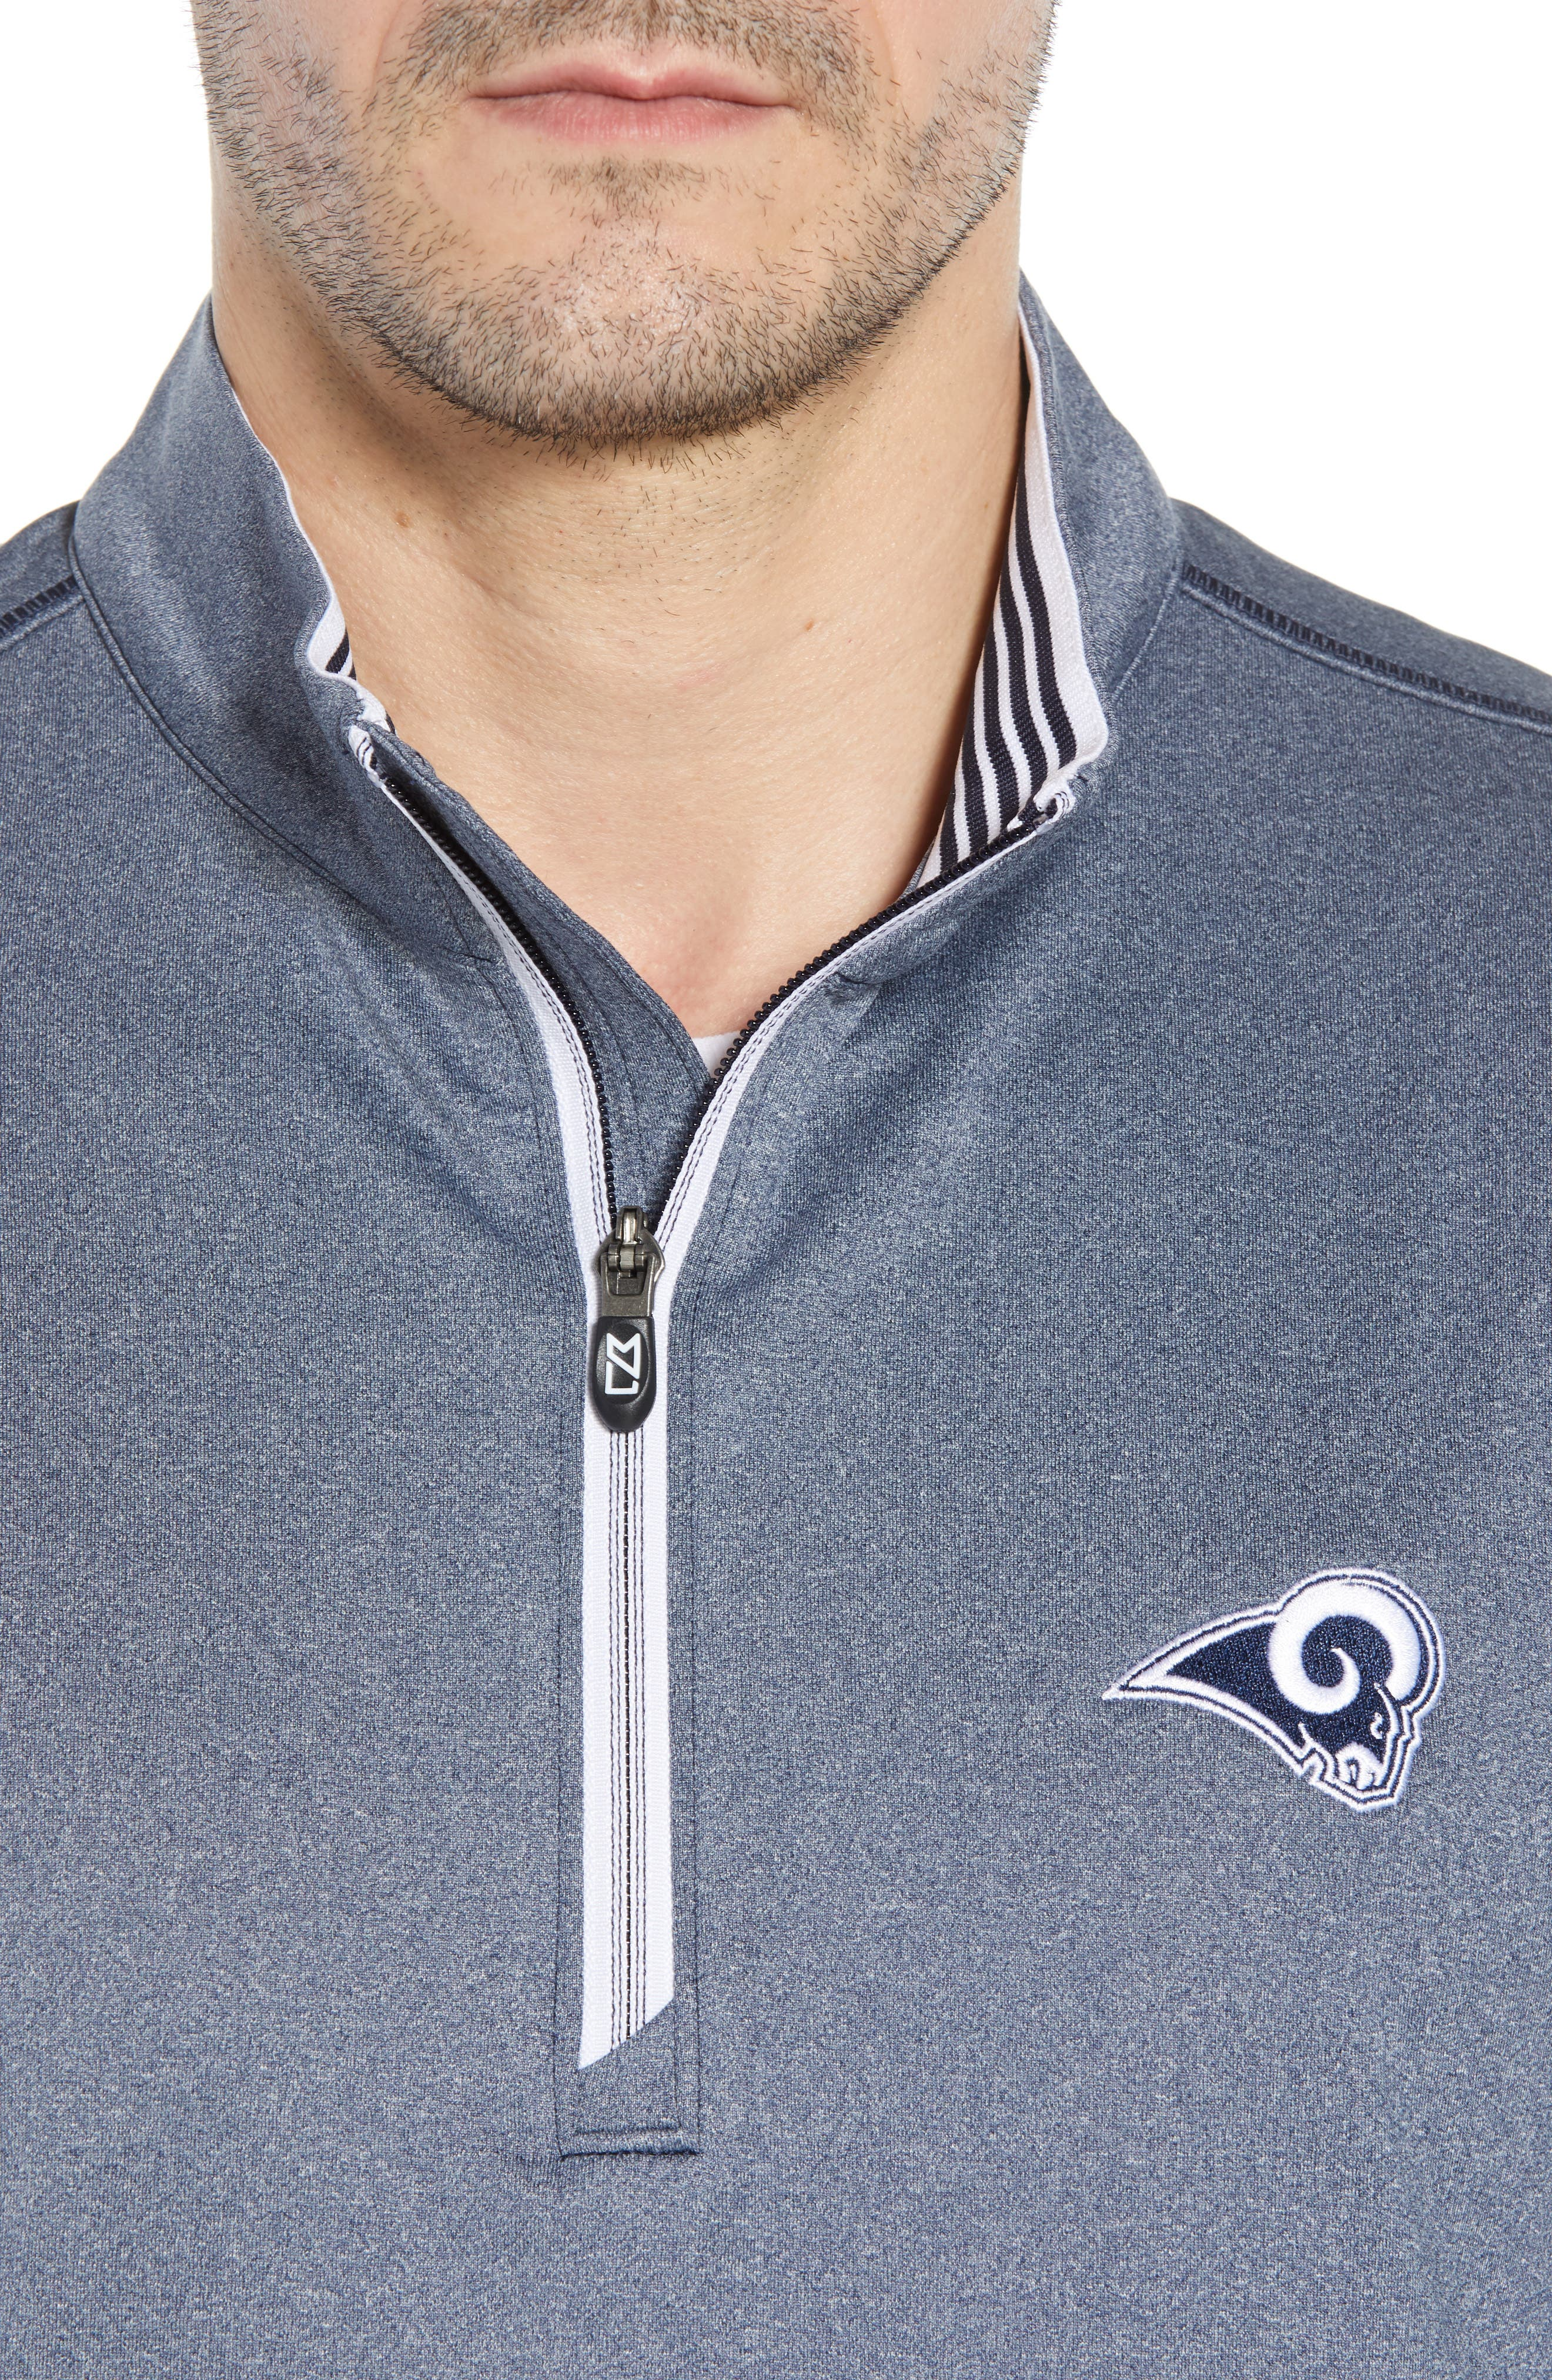 Endurance Los Angeles Rams Regular Fit Pullover,                             Alternate thumbnail 4, color,                             LIBERTY NAVY HEATHER